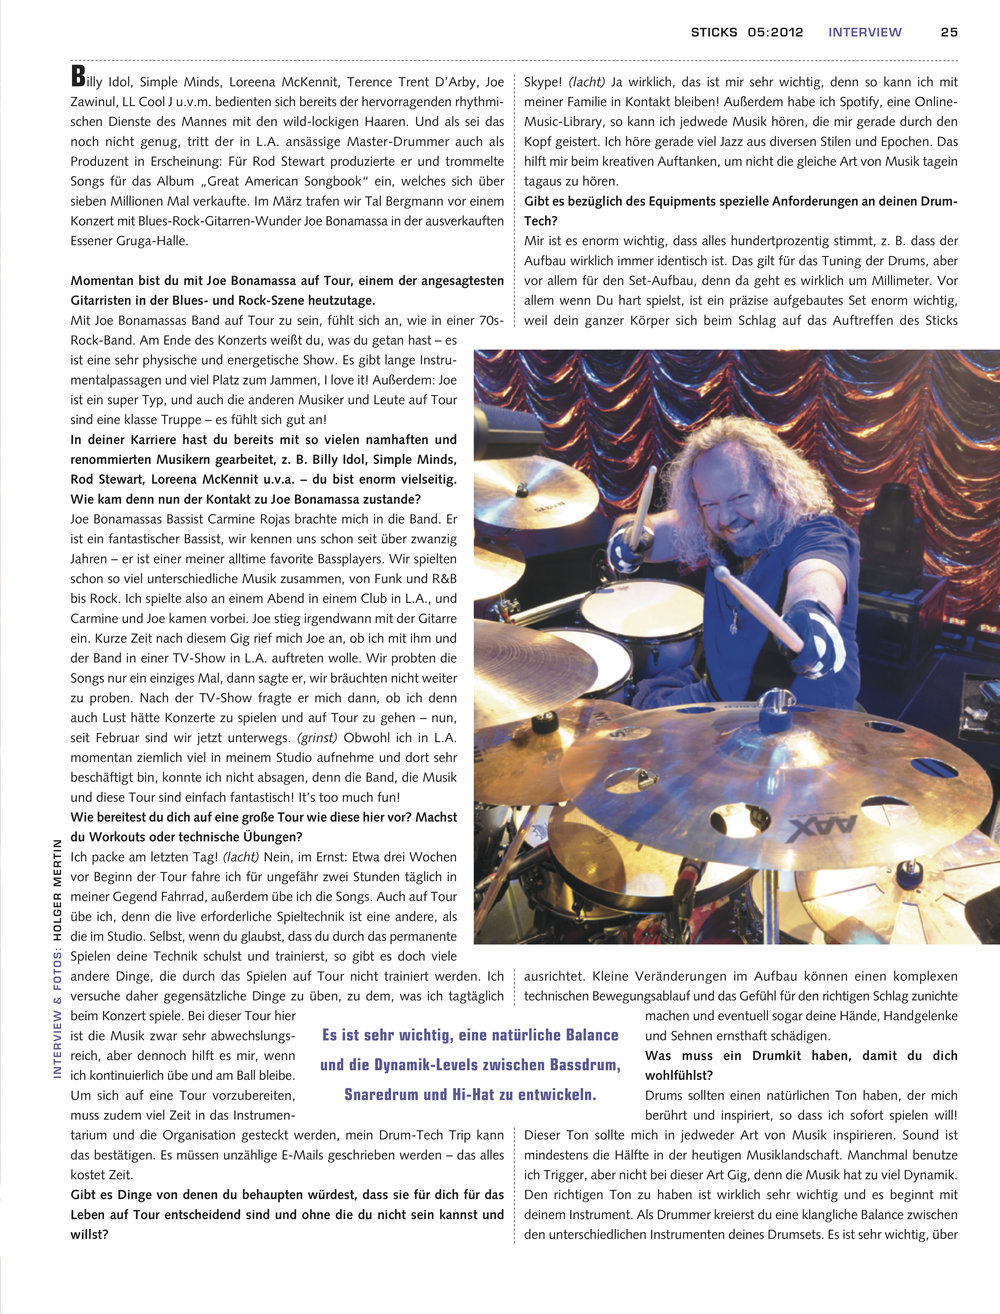 Sticks Magazin 2012 page 2